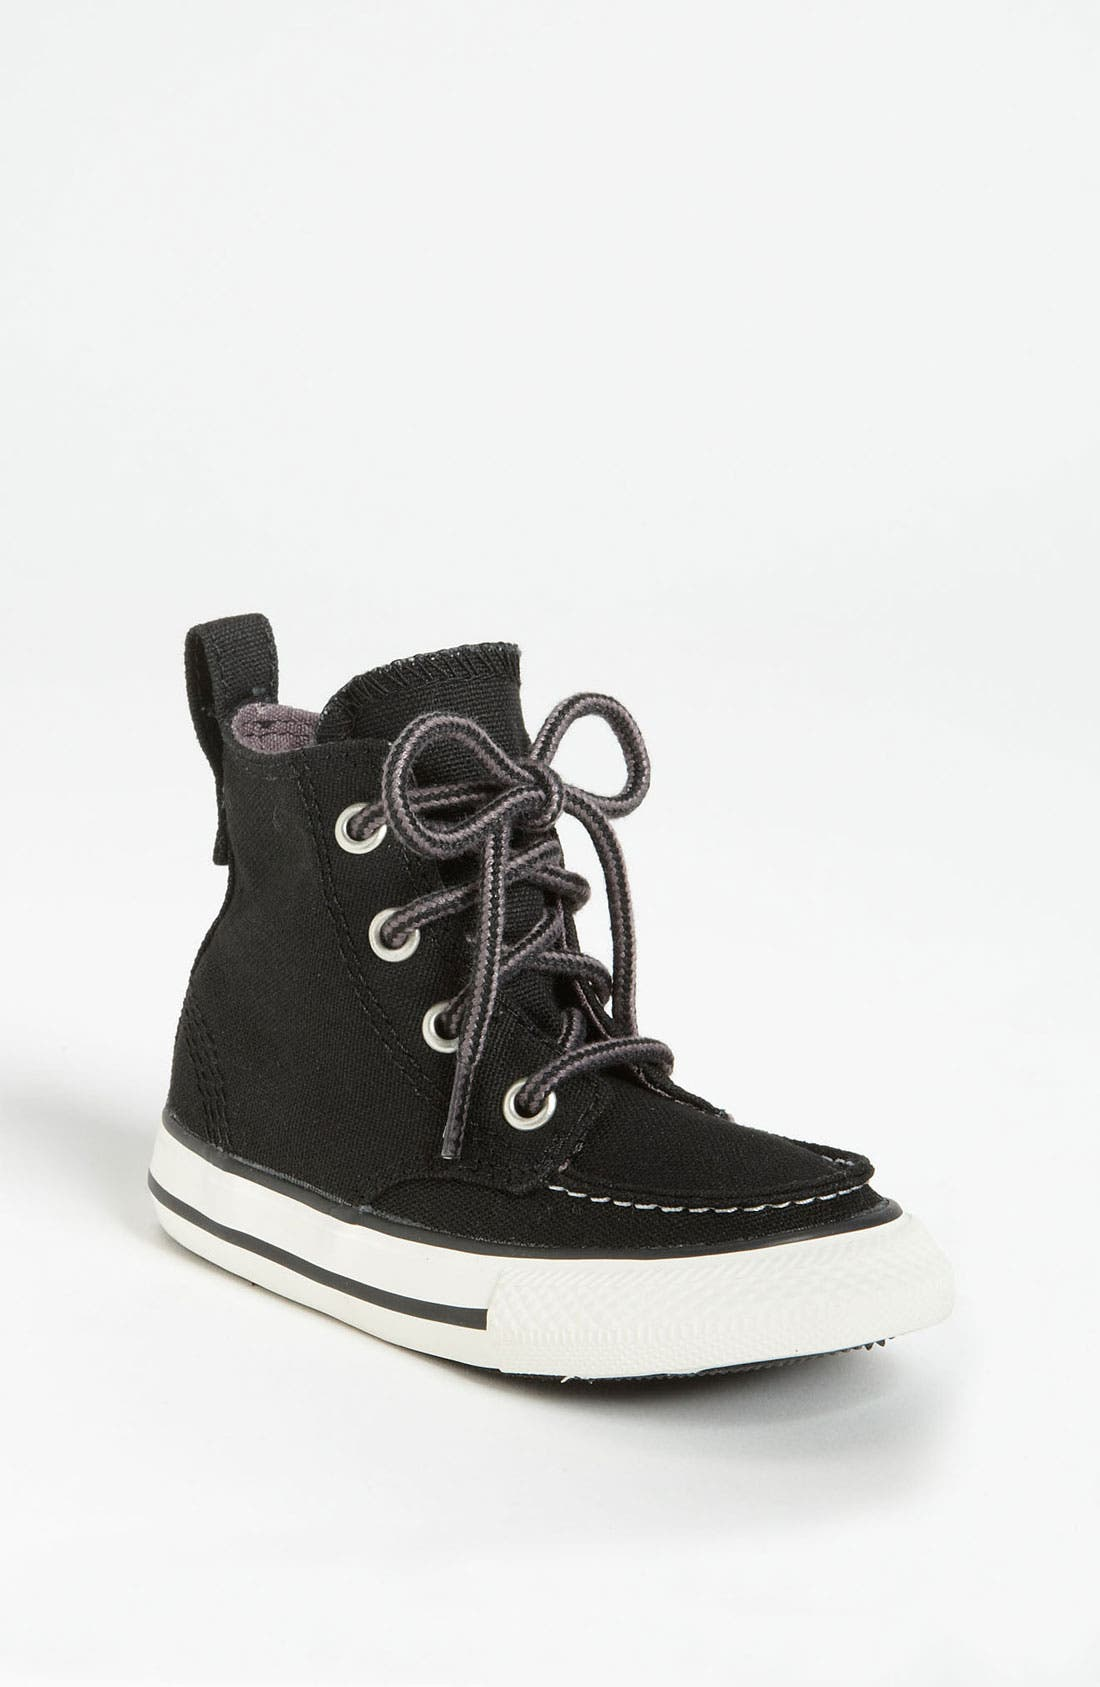 Alternate Image 1 Selected - Converse Chuck Taylor® High Top Sneaker (Baby, Walker, Toddler, Little Kid & Big Kid)